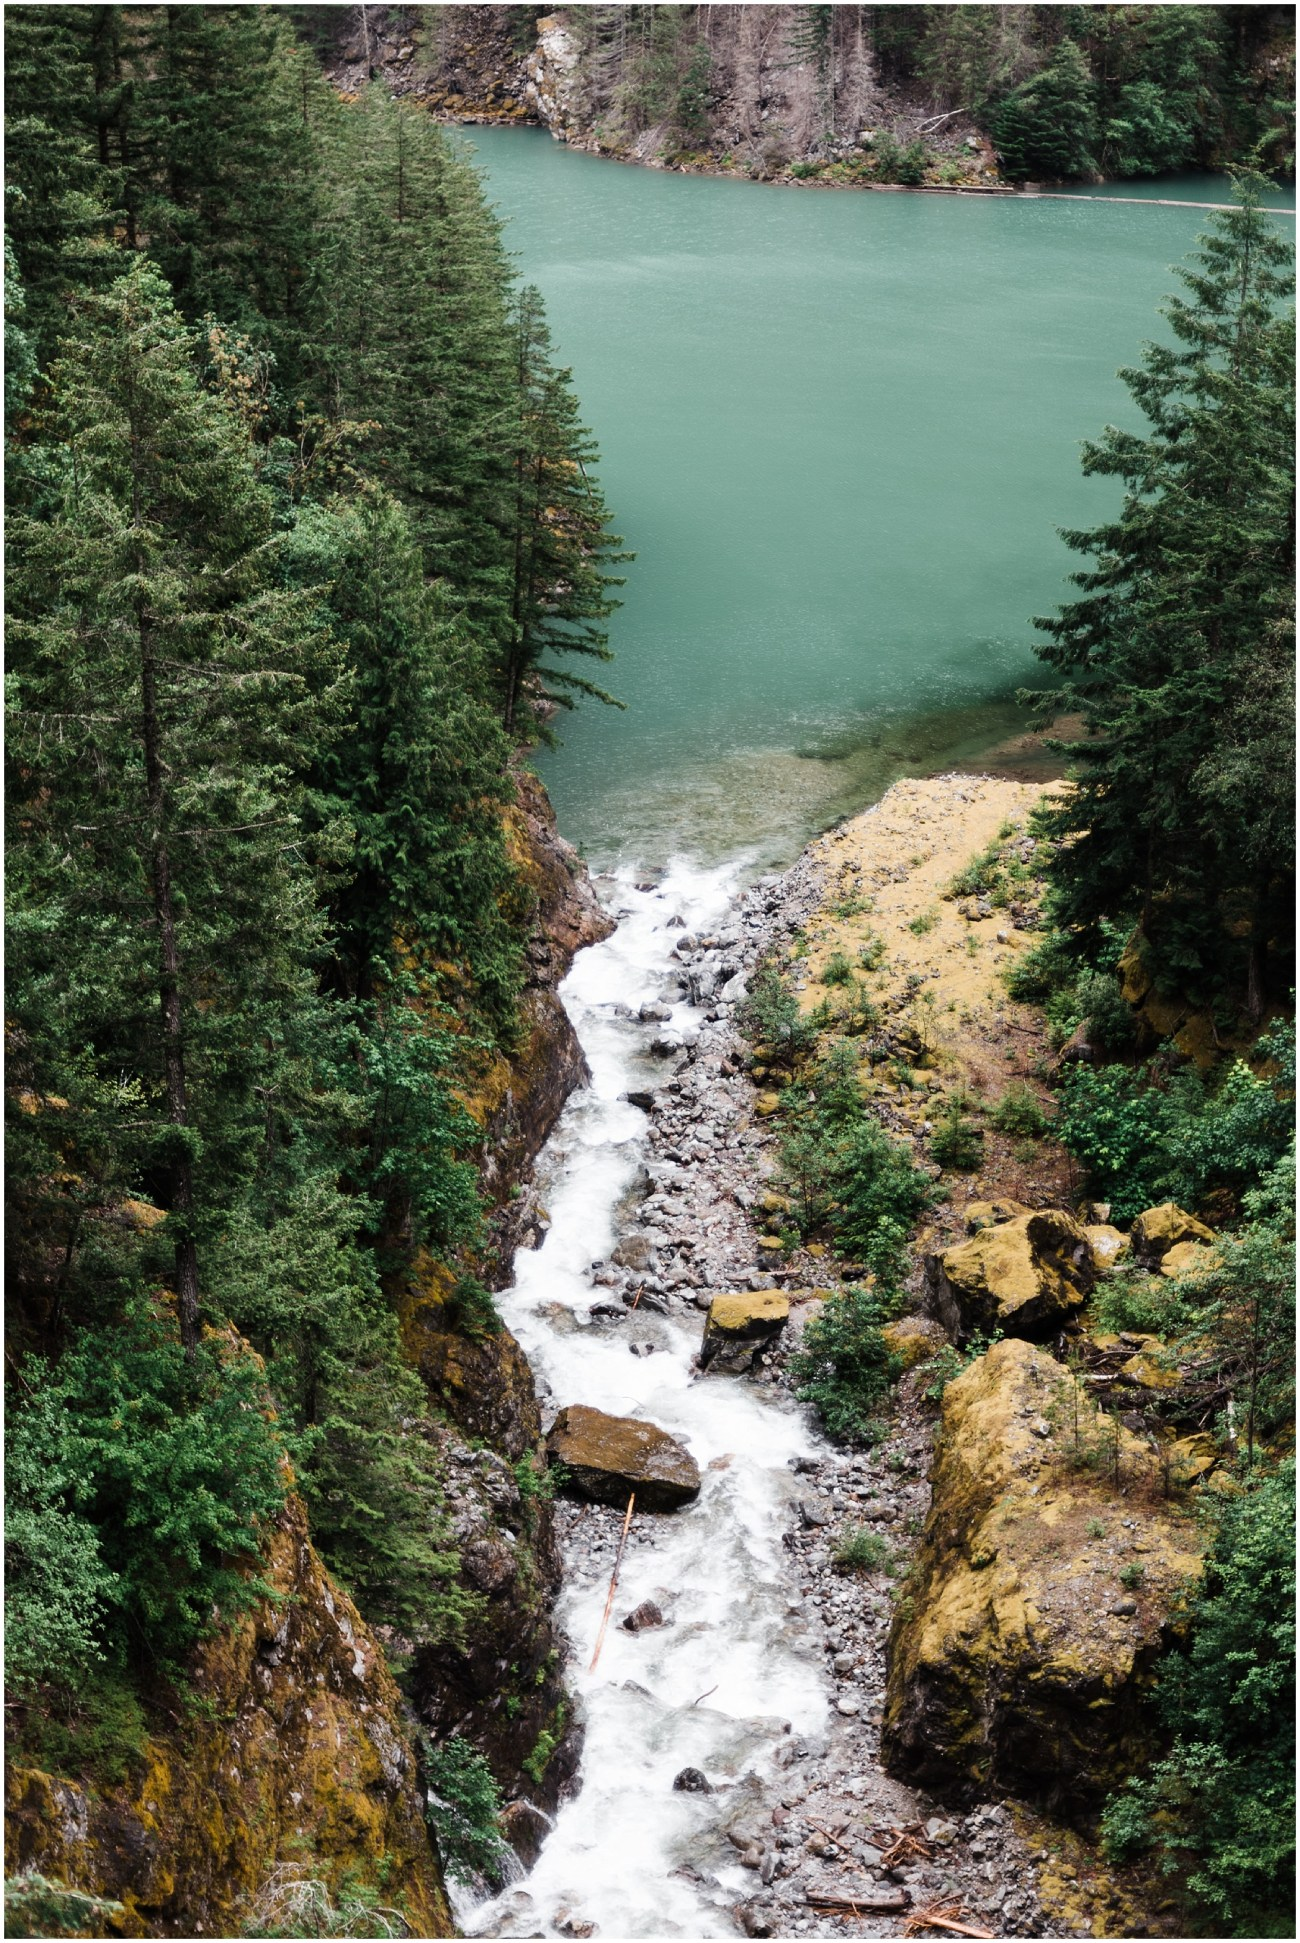 Aerial view of a river in North Cascades National Park by Forthright Photo